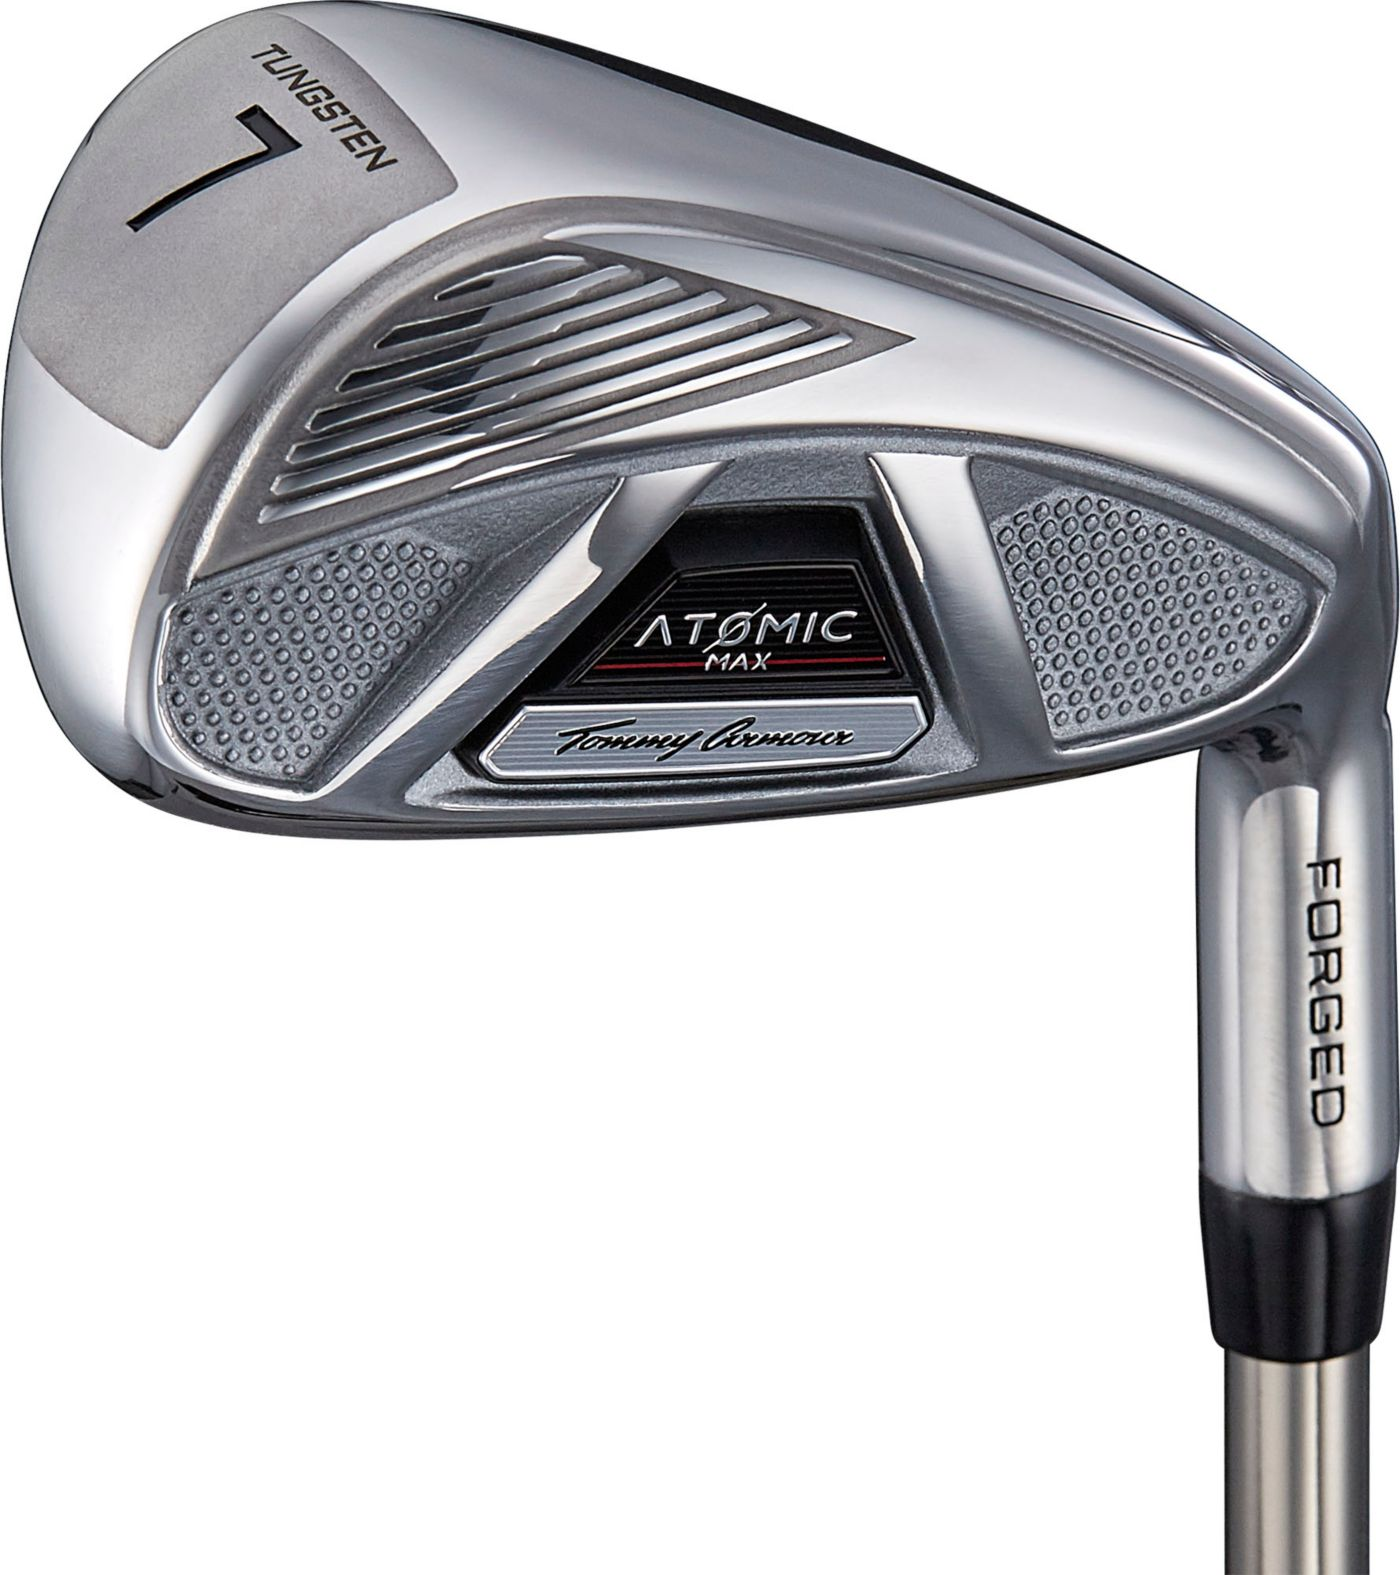 Tommy Armour ATOMIC MAX Irons – (Steel)